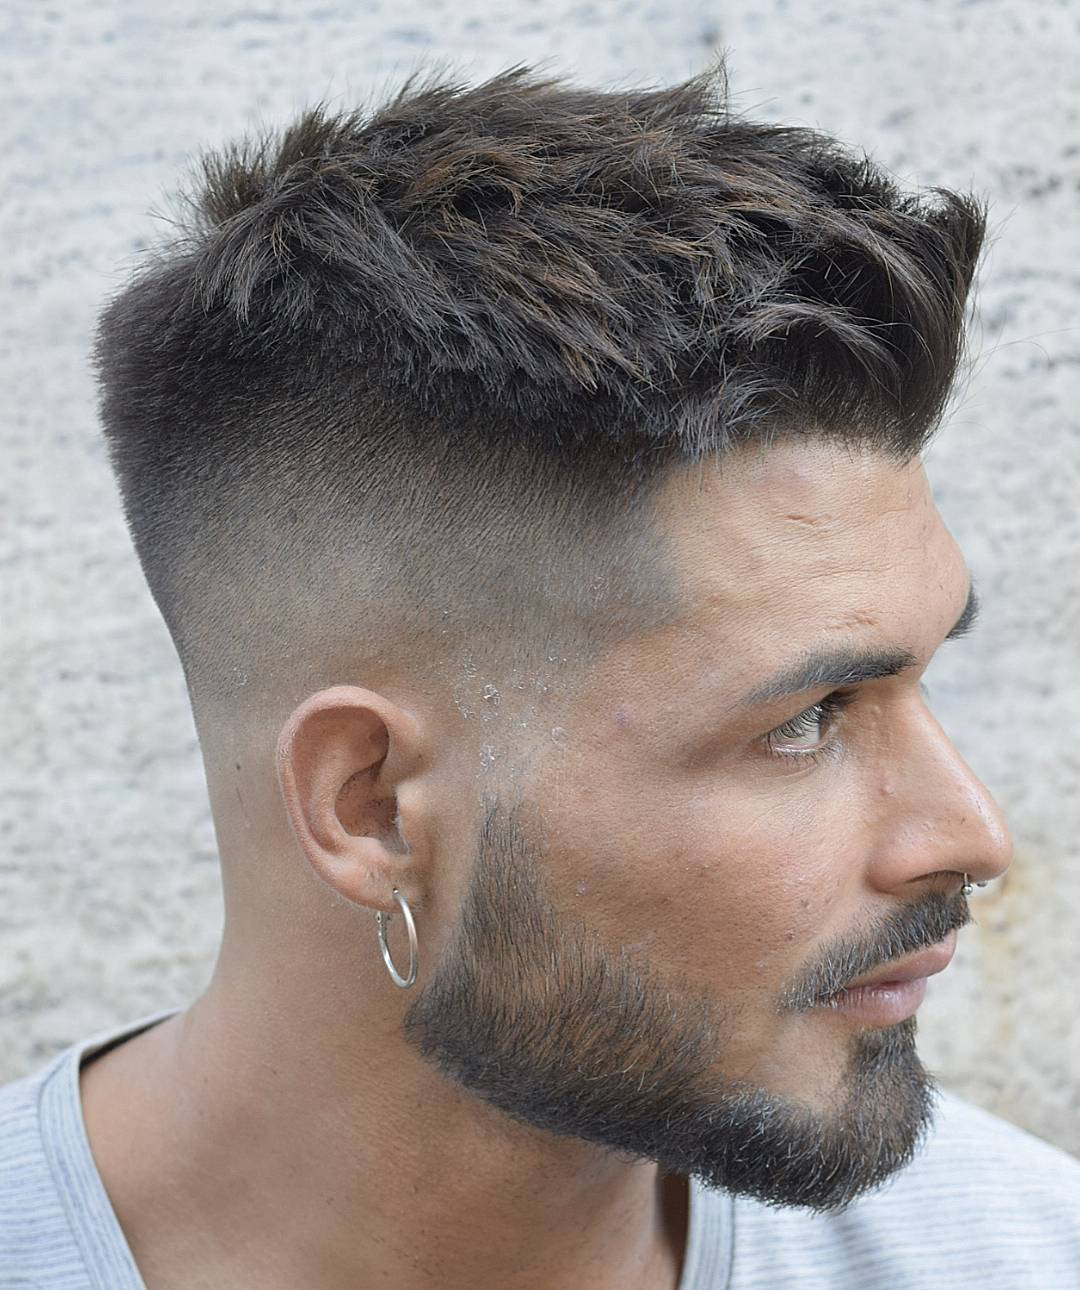 the best men's haircuts + hairstyles (ultimate roundup!)